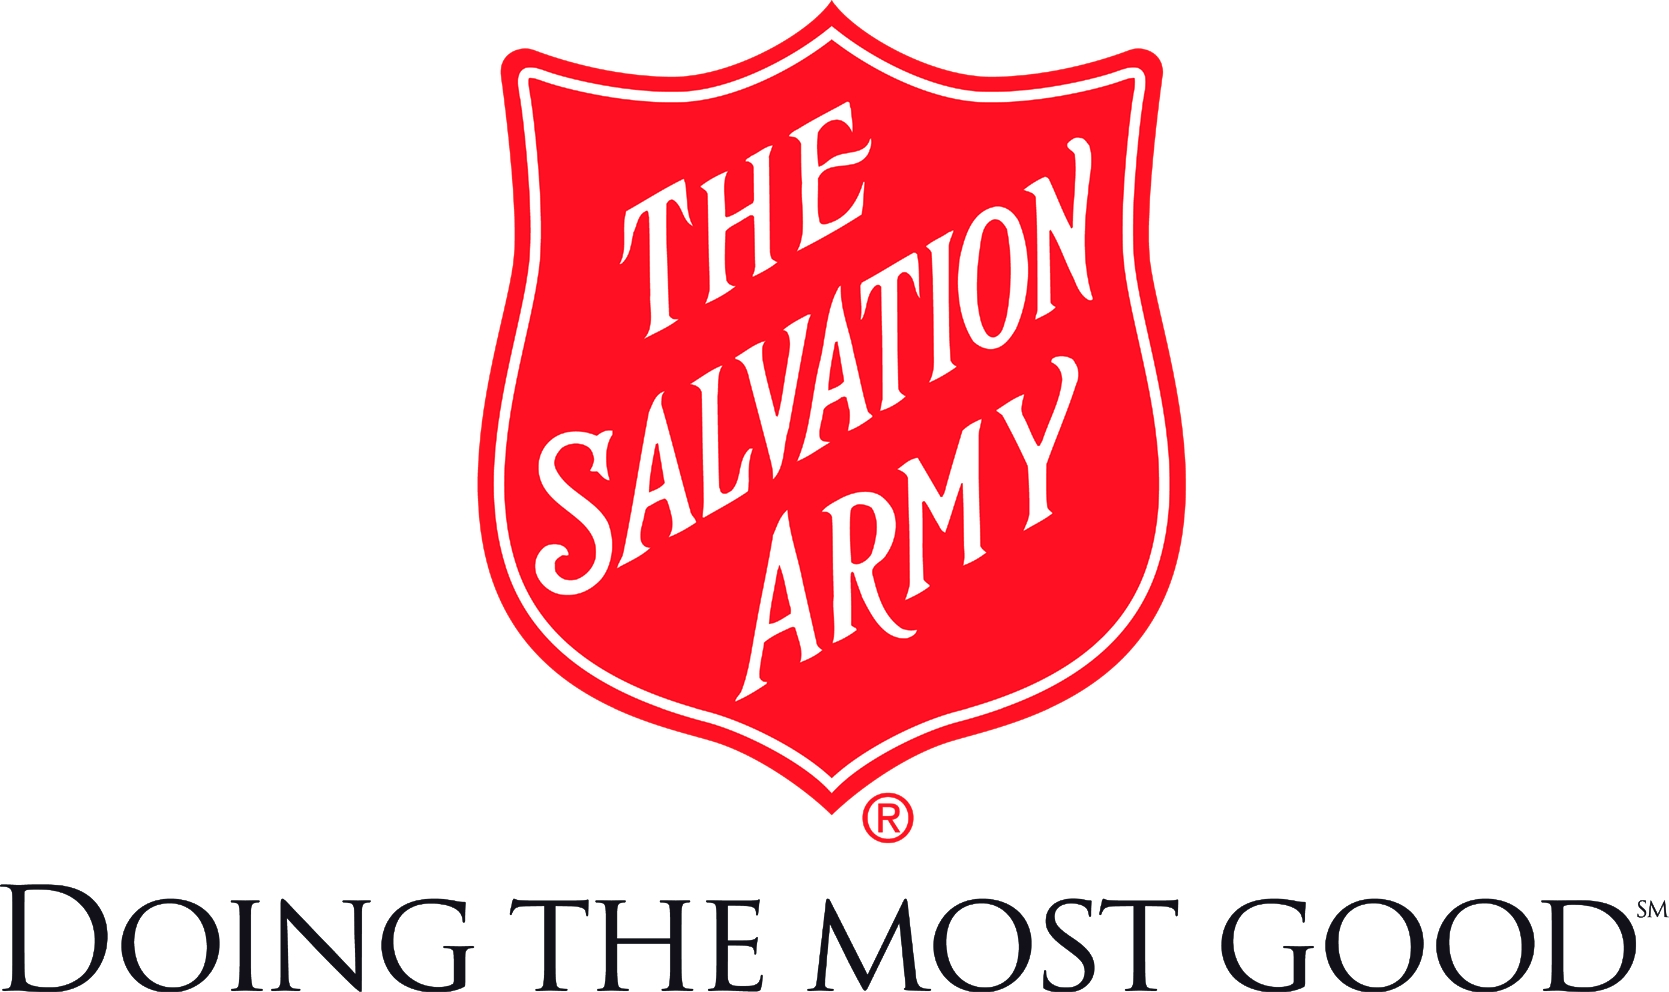 Army clipart christmas Collection salvation army Army Clipart